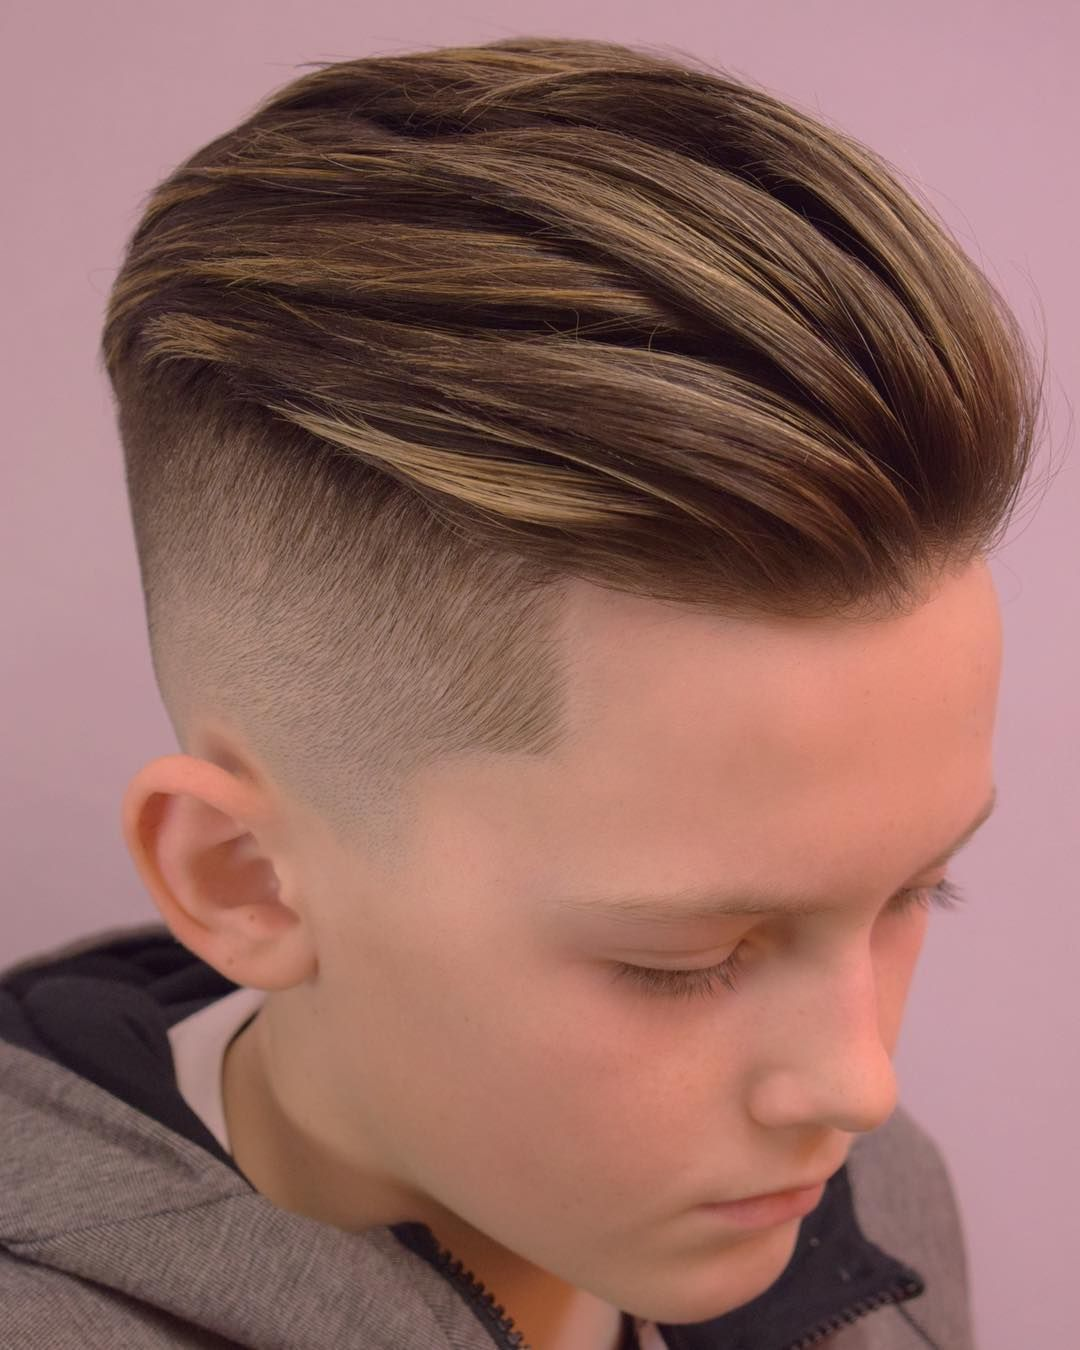 Boy Hairstyle Magnificent Undercuts Hairstyles Boys  Haircuits  Pinterest  Corte De Pelo